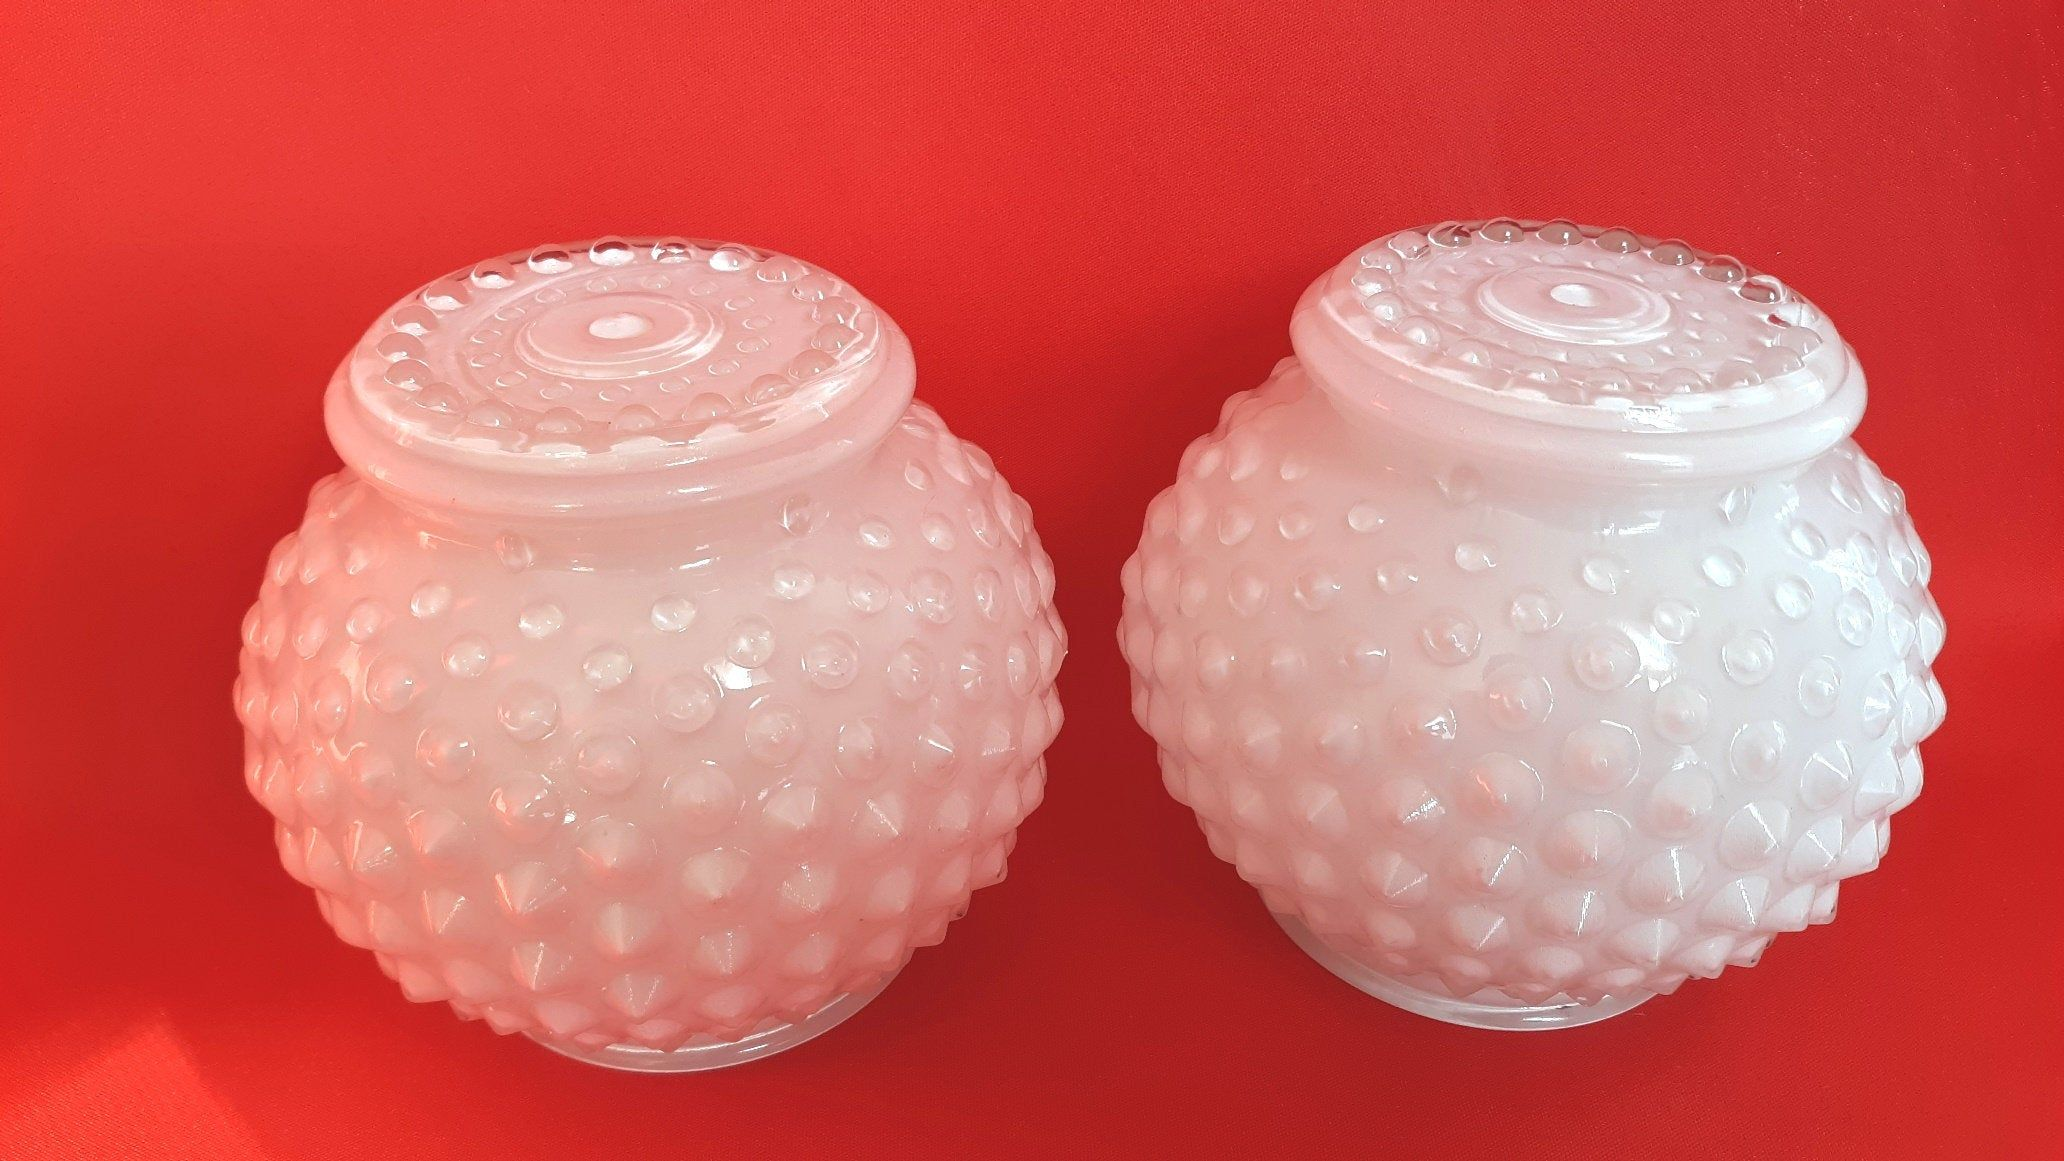 Pair White Glass Spiky Hobnail Design Globes Light Fixture Etsy Globe Light Fixture Bathroom Wall Sconces Globe Lights Replacement globes for bathroom lights